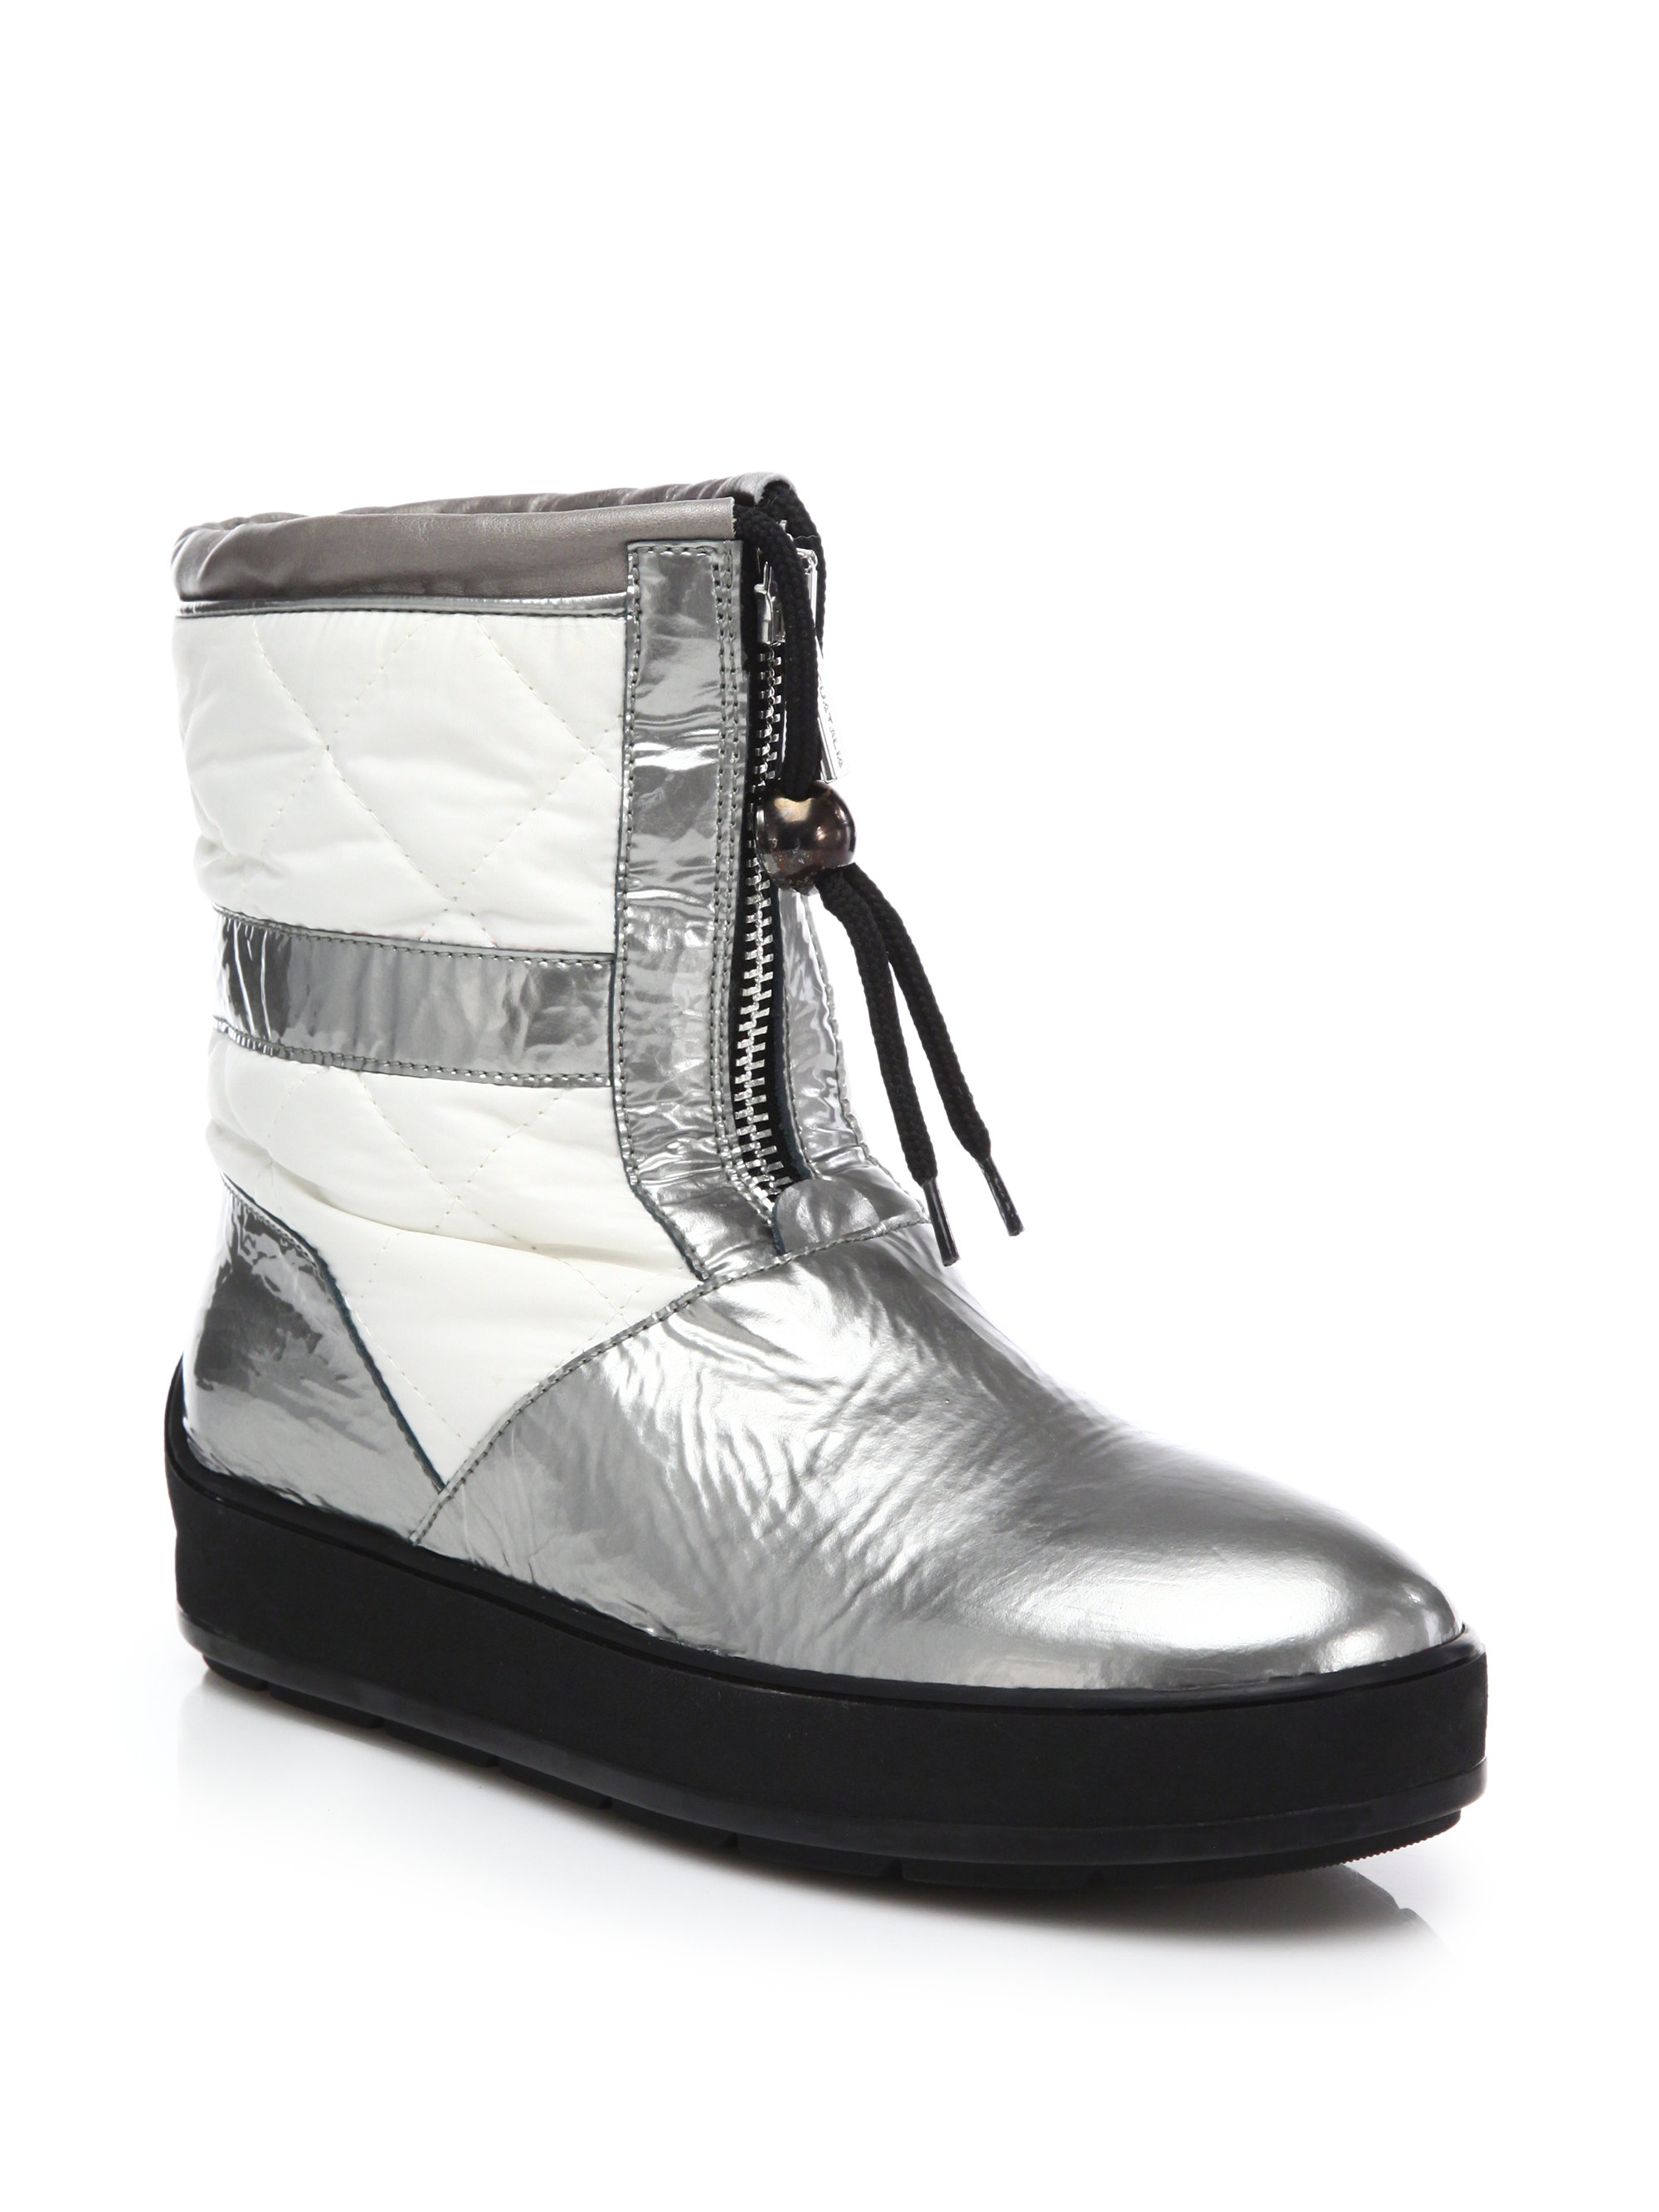 aquatalia kali patent leather quilted boots in